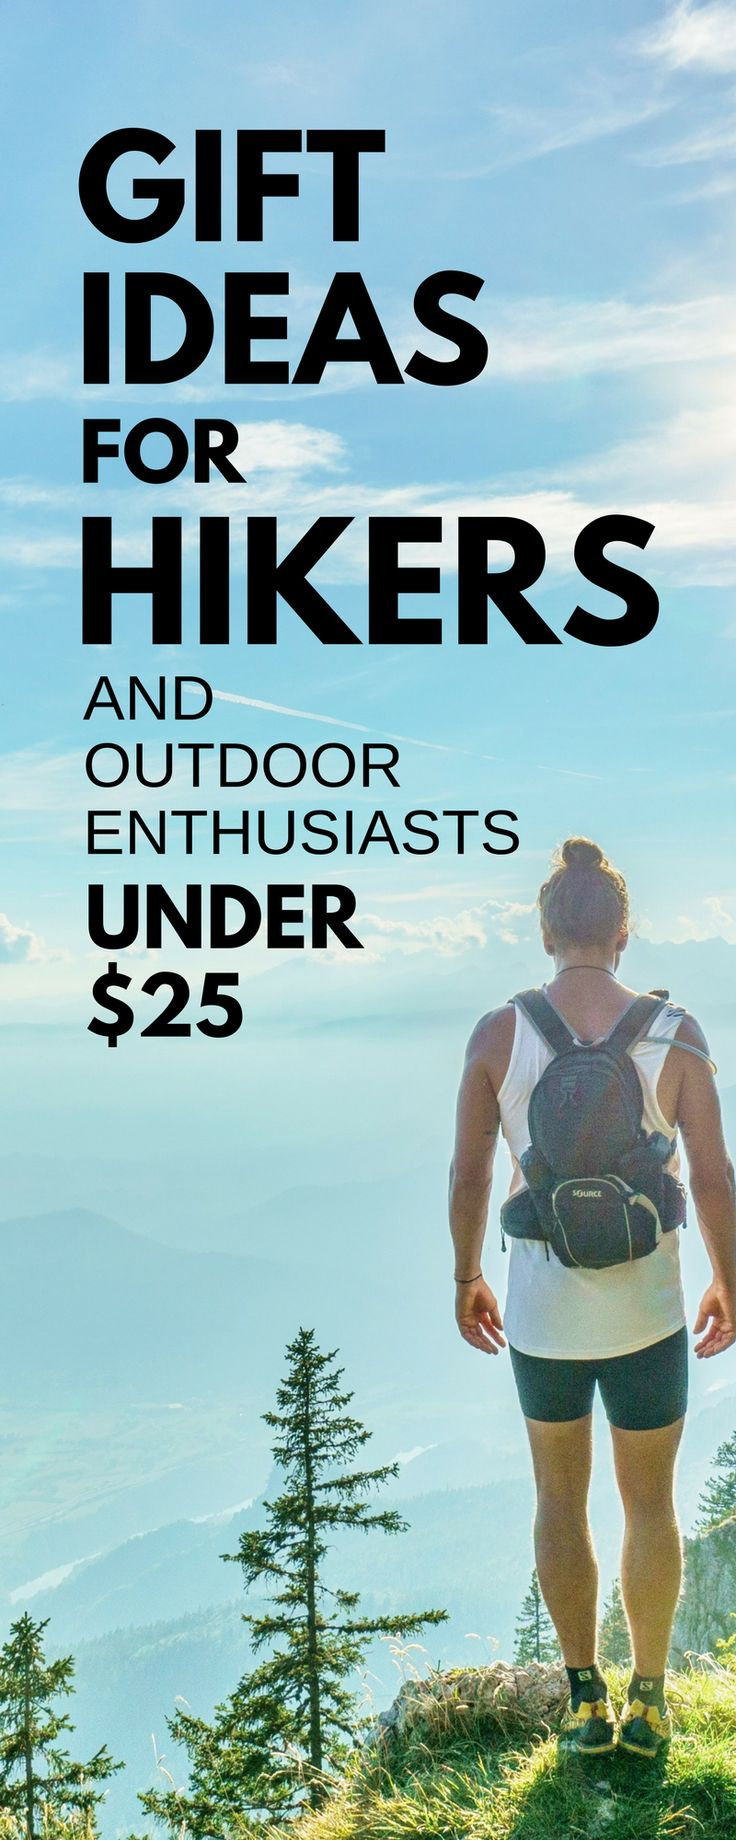 Hiking gift list for beginners and backpackers. Tips for gift ideas for hiking, camping, survival, emergency preparedness, outdoor enthusiasts. Some essentials as hiking gear, some home decor, coffee mugs with adventure travel and hiking quotes, jewelry for hikers. Items that might be on a day hike packing list or multi-day overnight backpacking checklist in hot weather summer and cold weather winter, including what to wear hiking, women and men. Fun hiking! #hikinggifts #hiking